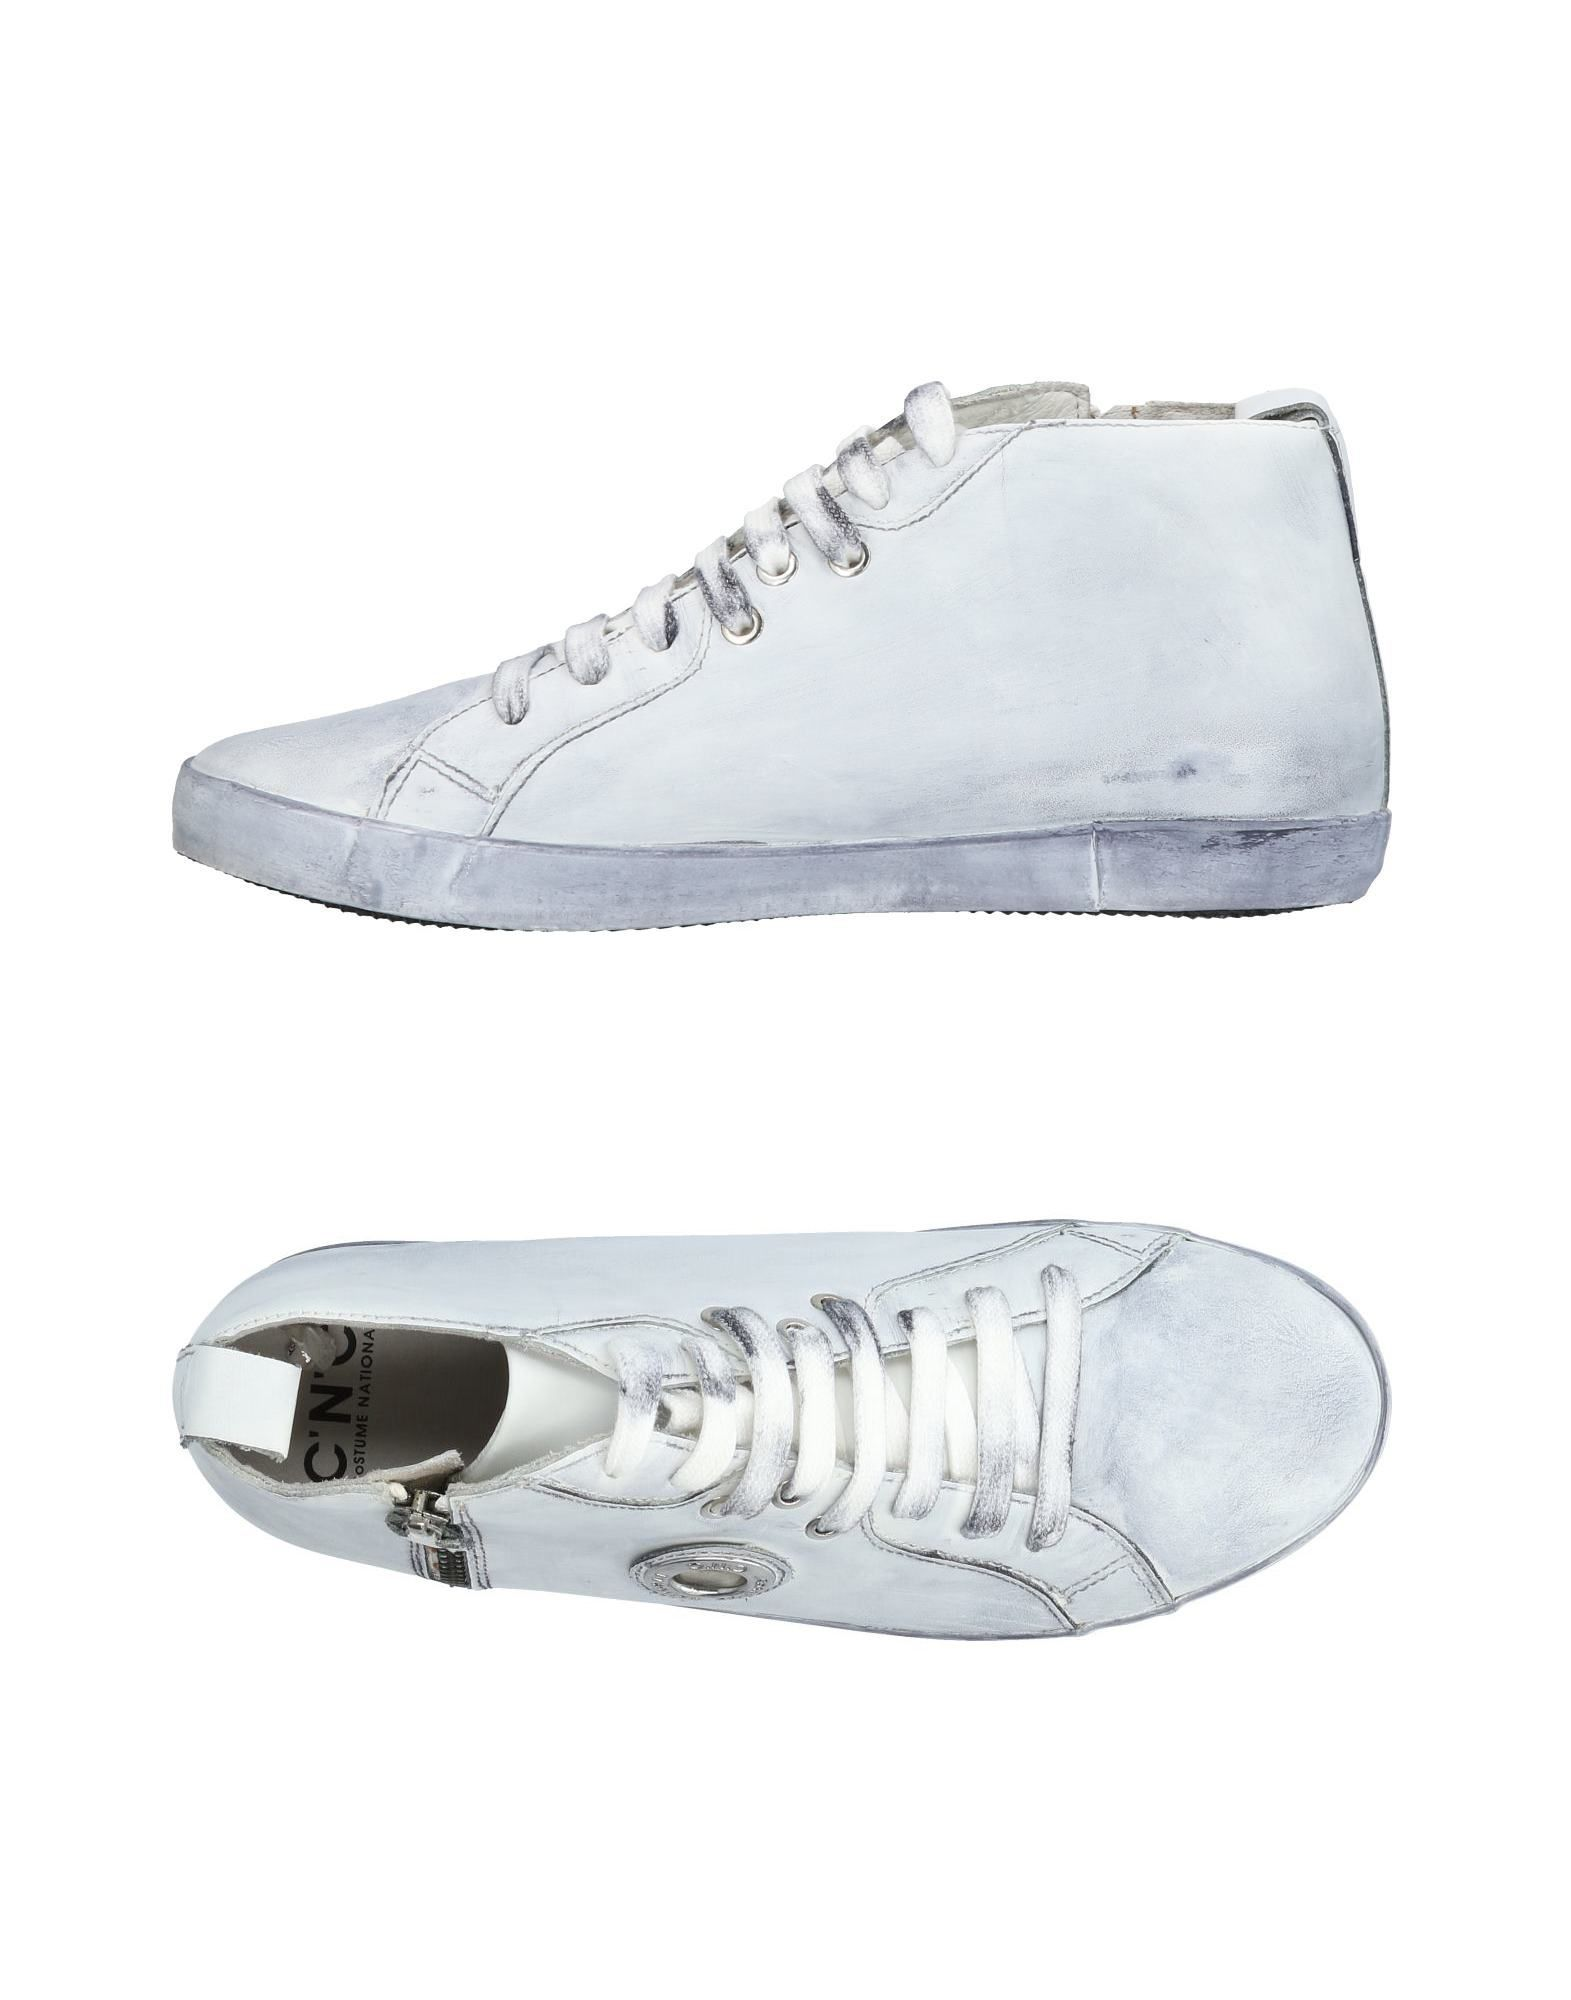 Sneakers Cnc Costume National Femme - Sneakers Cnc Costume National sur